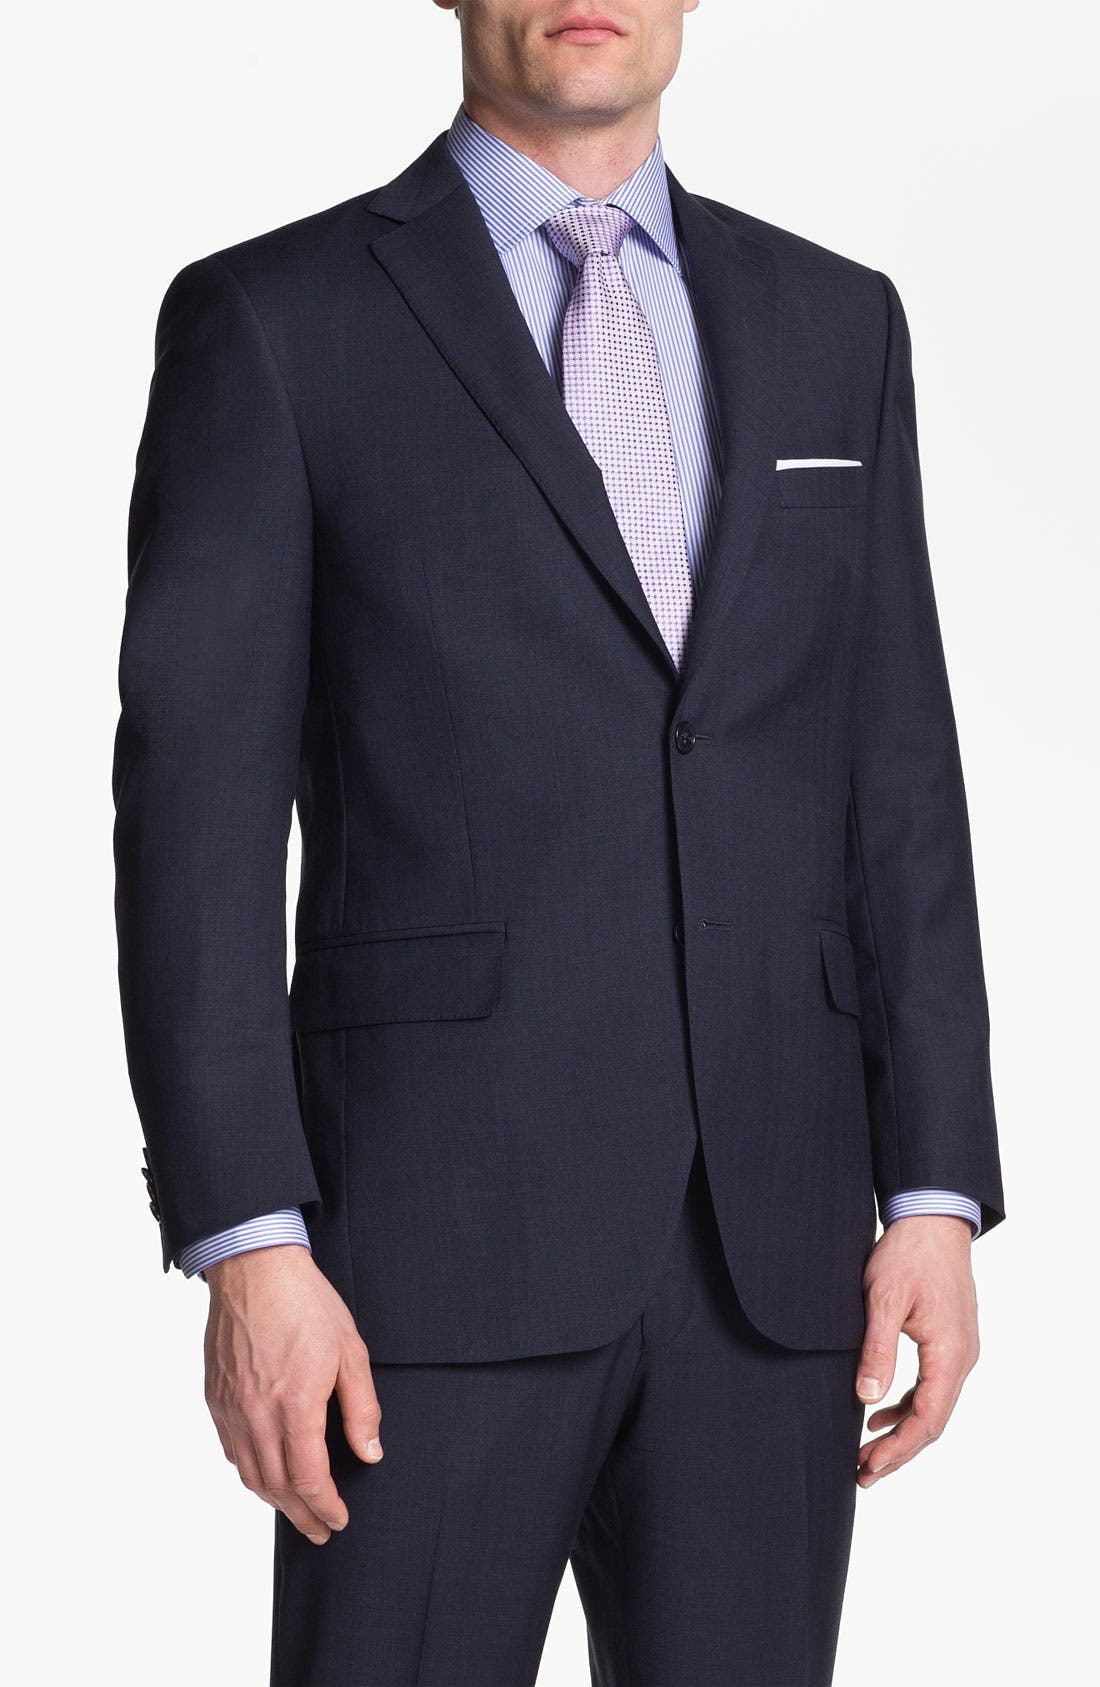 Alternate Image 1 Selected - Peter Millar Wool Suit